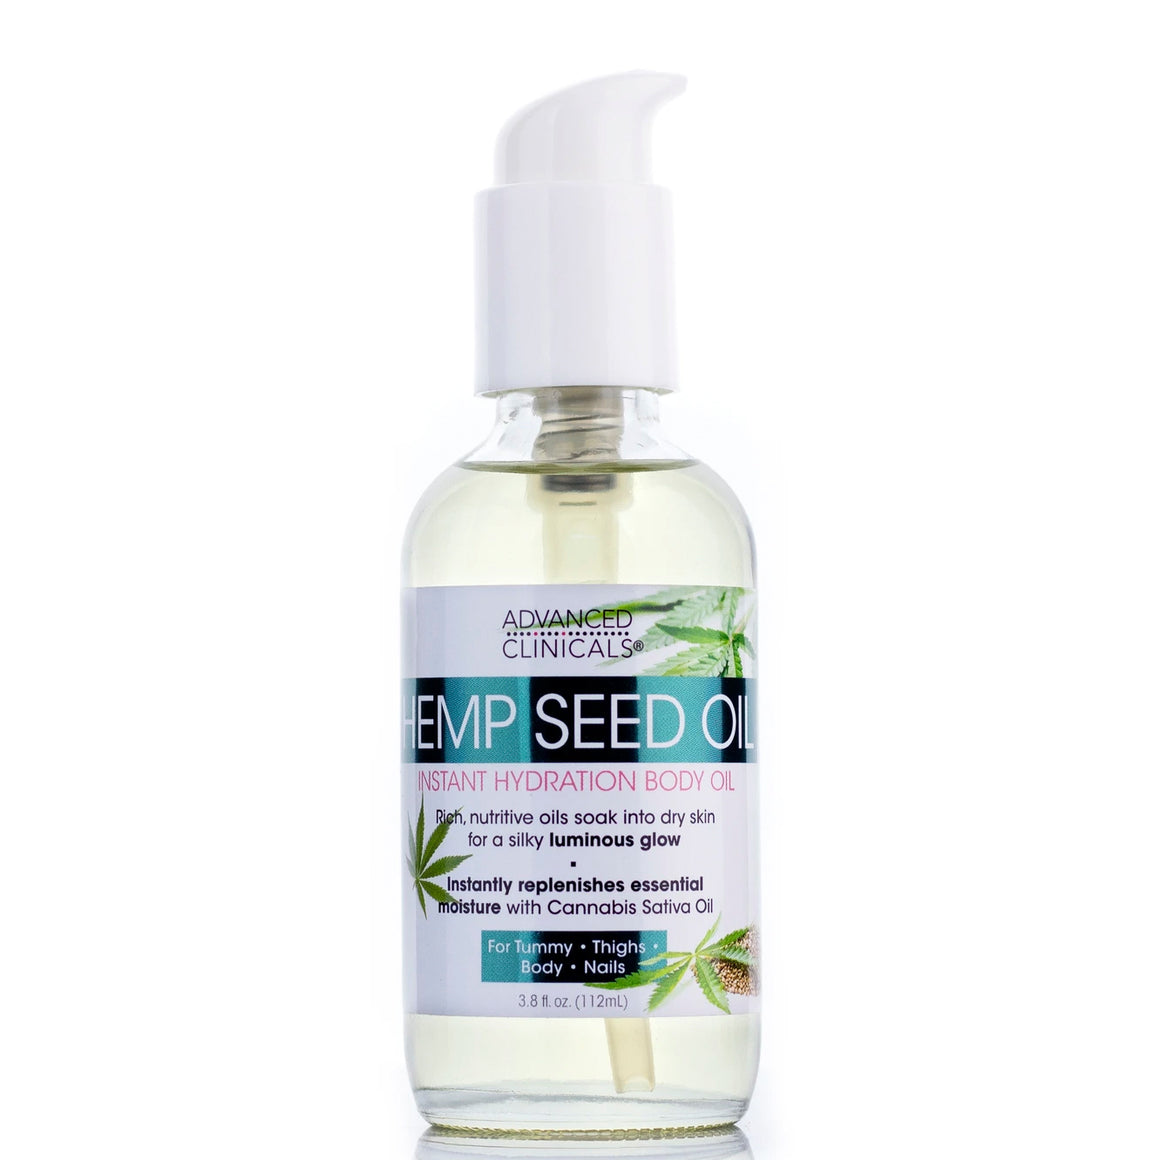 3.4oz hemp seed body oil with cannabis sativa oil, luminous glow